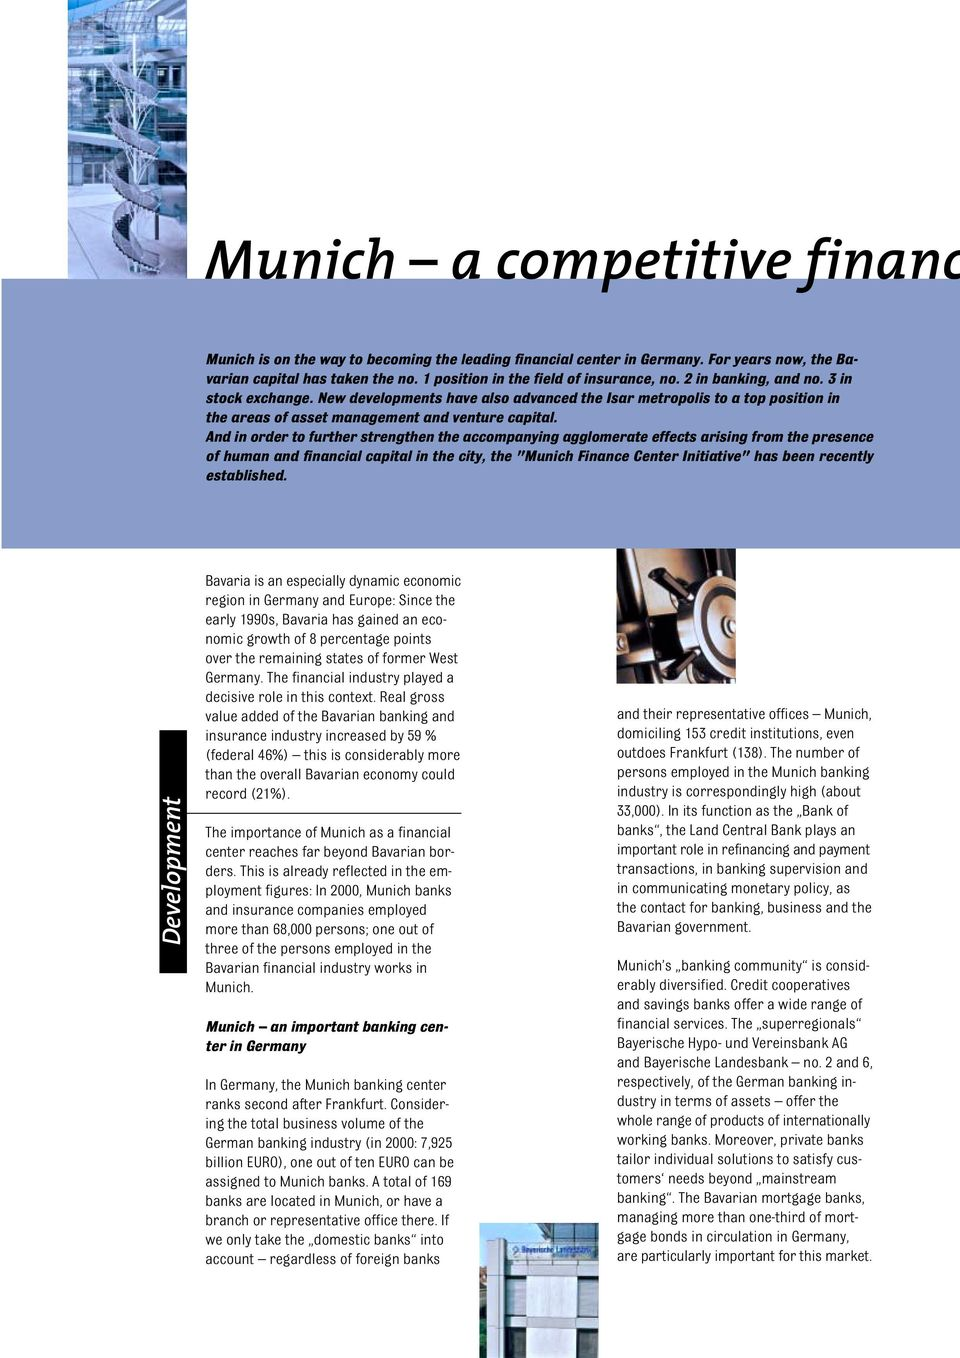 "And in order to further strengthen the accompanying agglomerate effects arising from the presence of human and financial capital in the city, the ""Munich Finance Center Initiative"" has been recently"